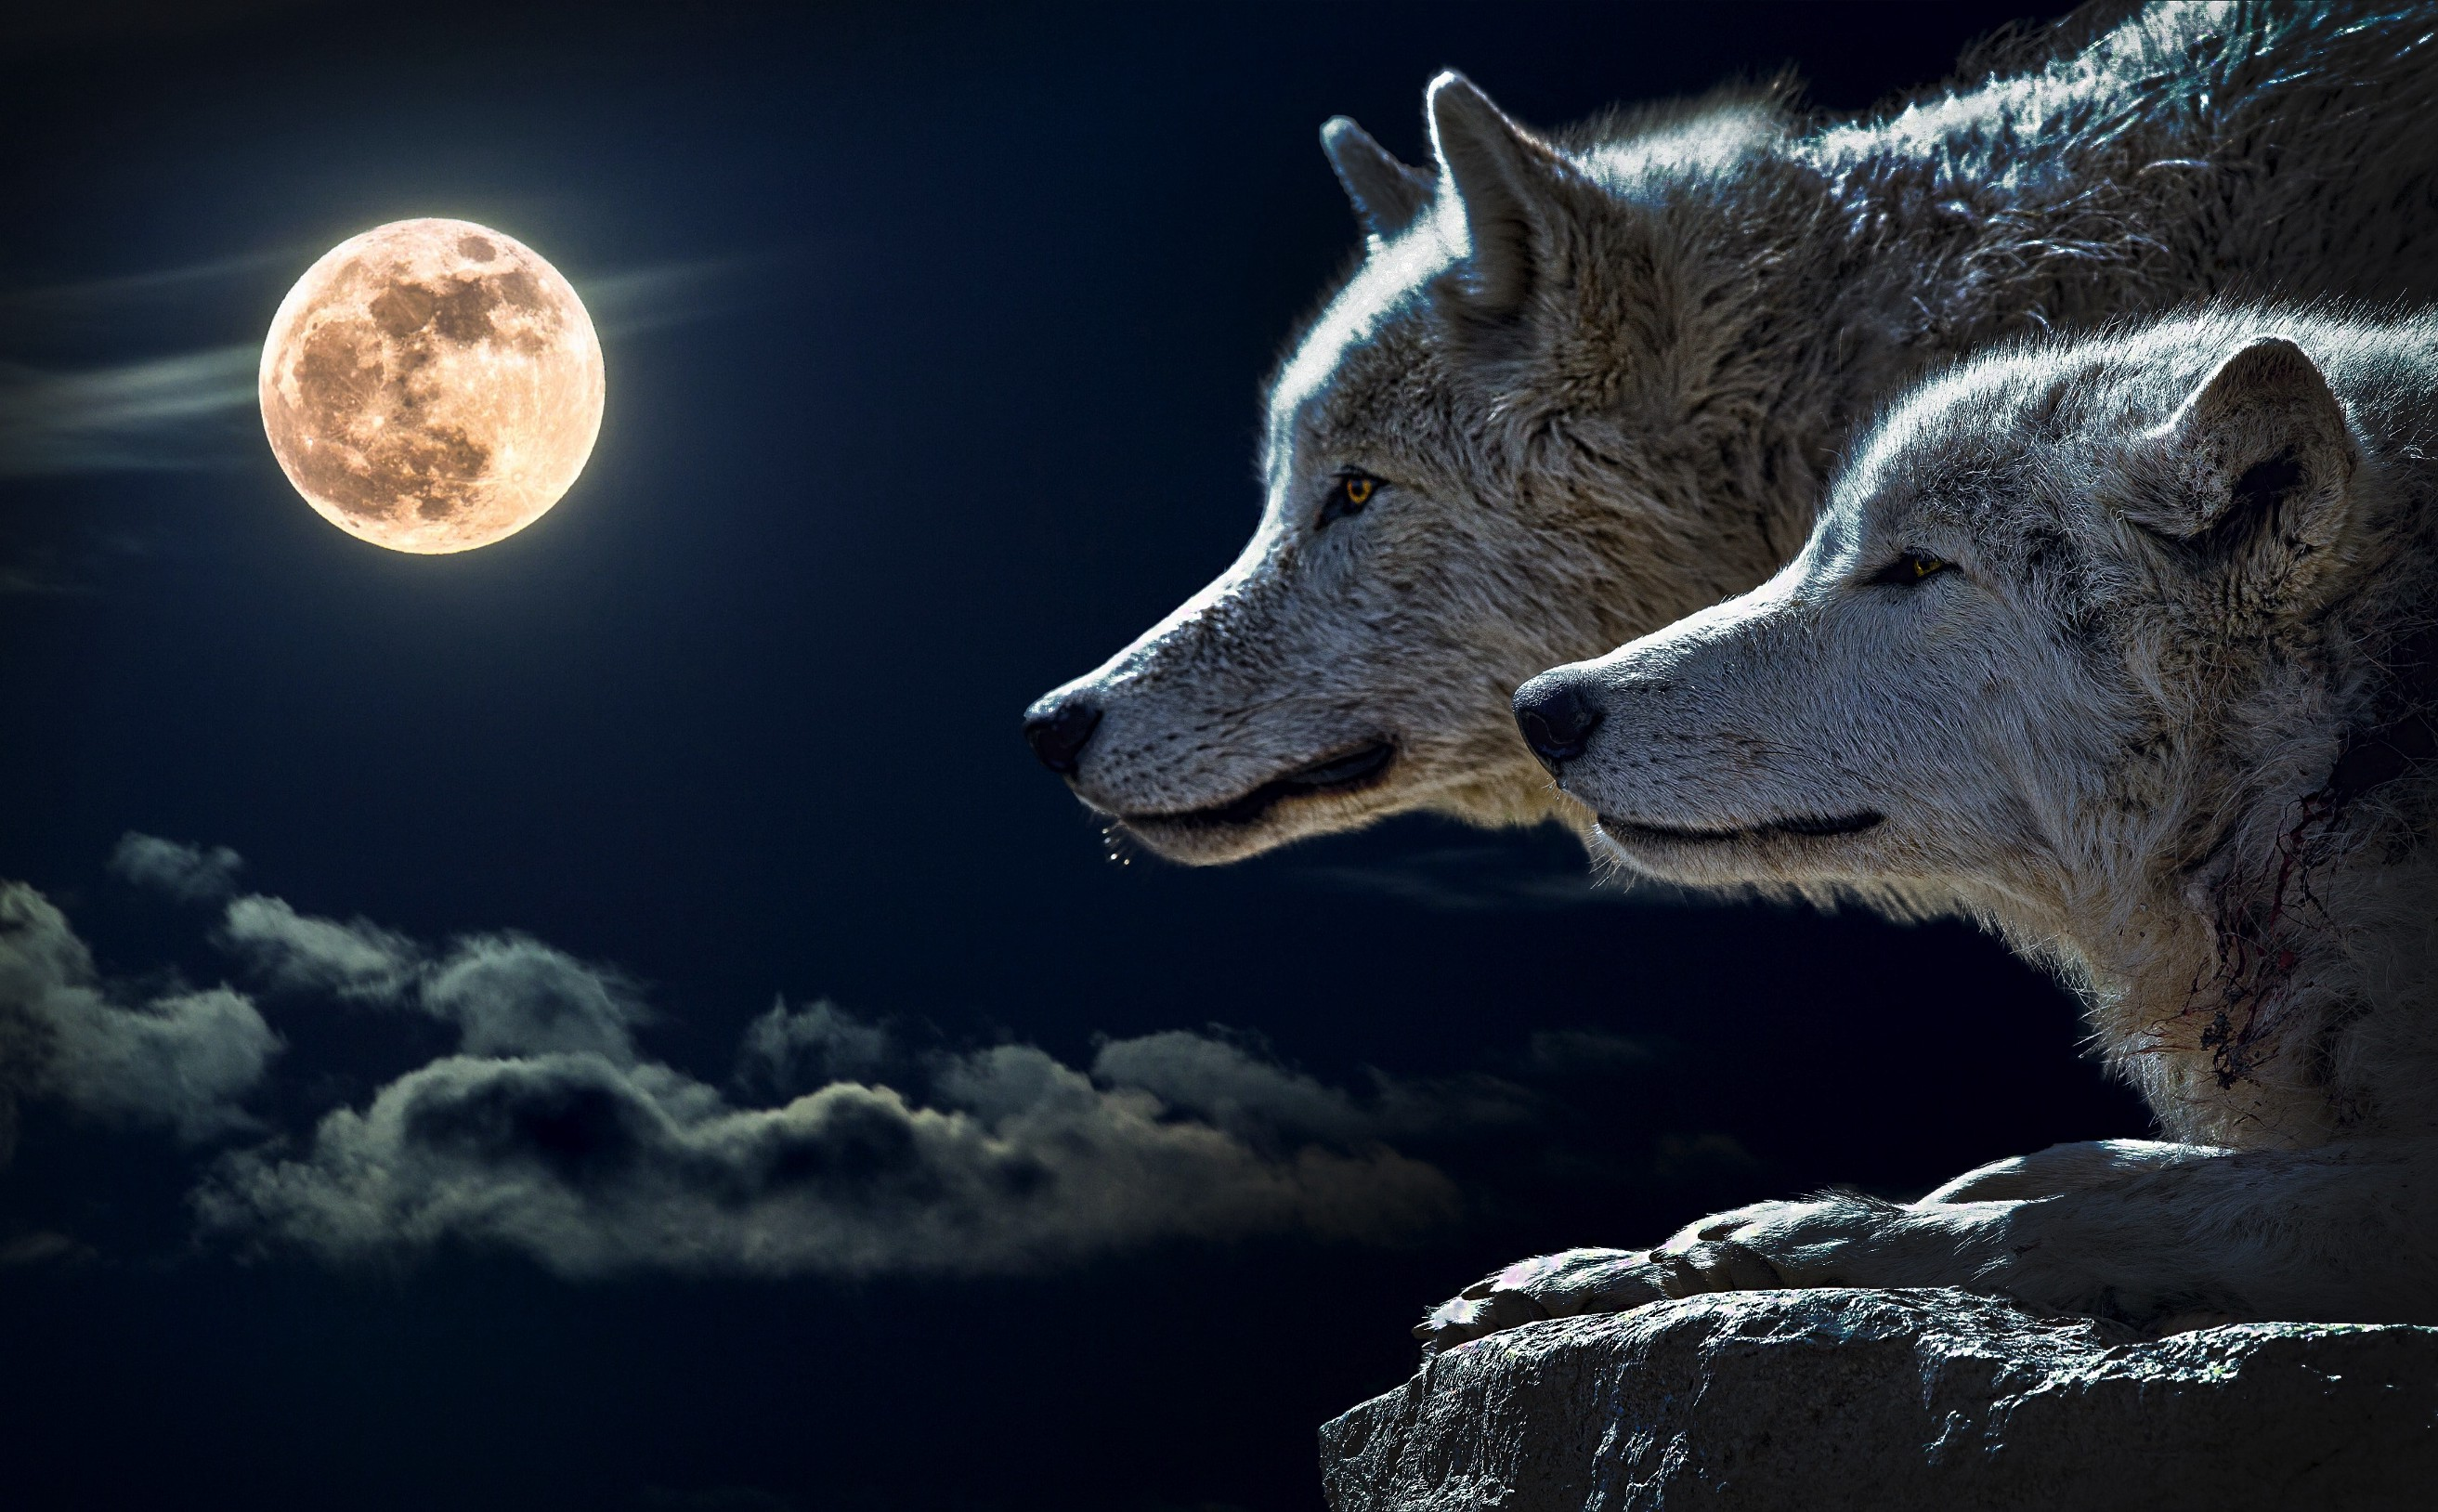 You Know That Charming Little Story About the Two Wolves? It's a Lie